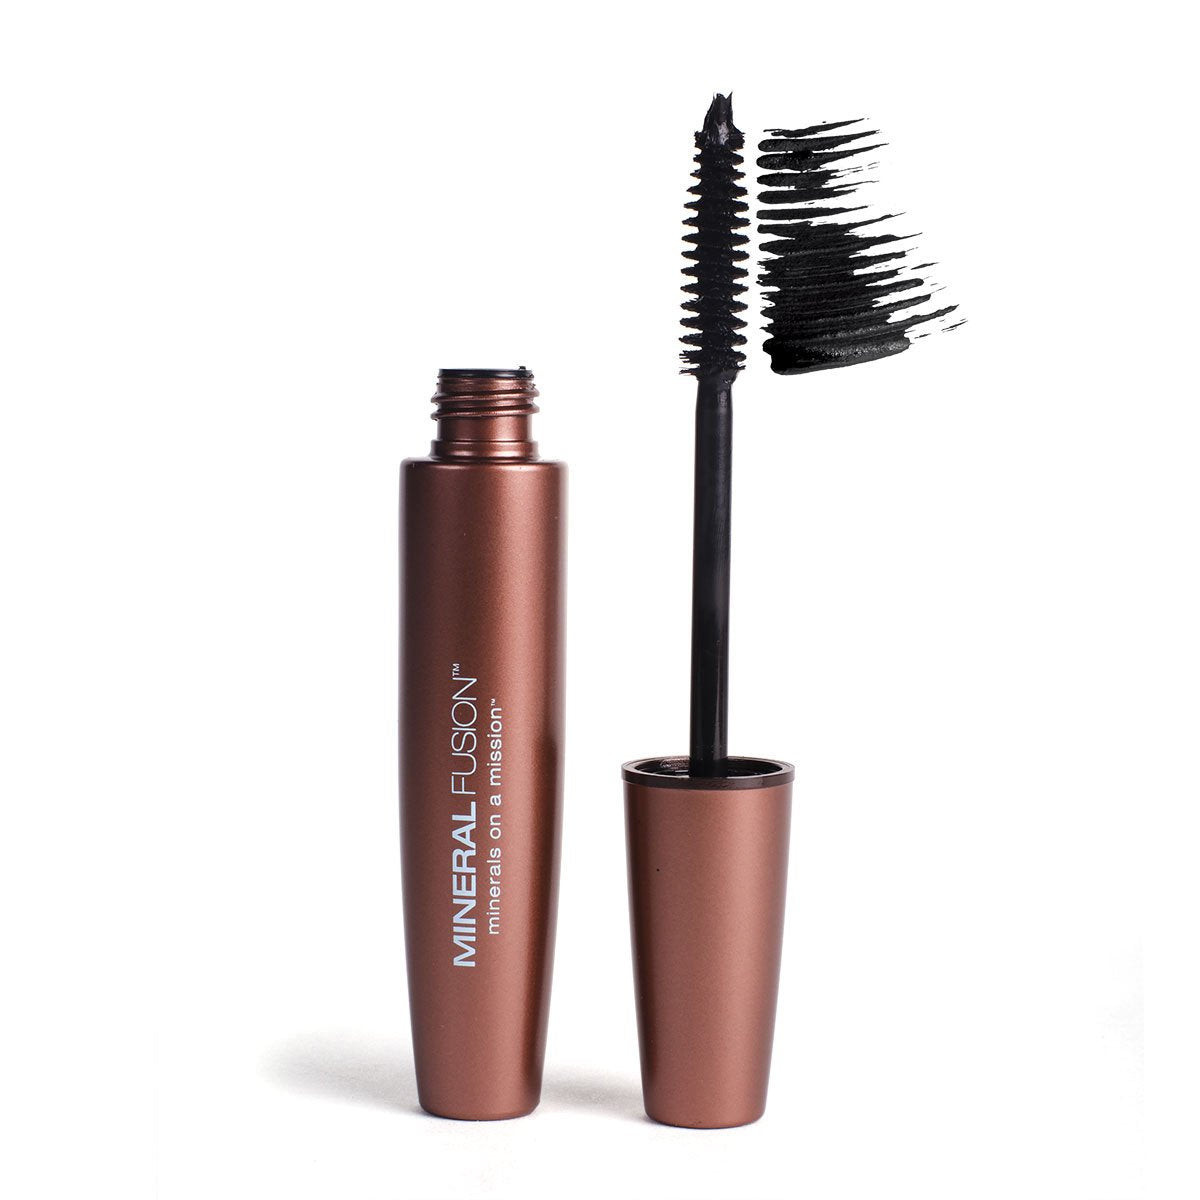 Lengthening Mascara - Mineral Fusion